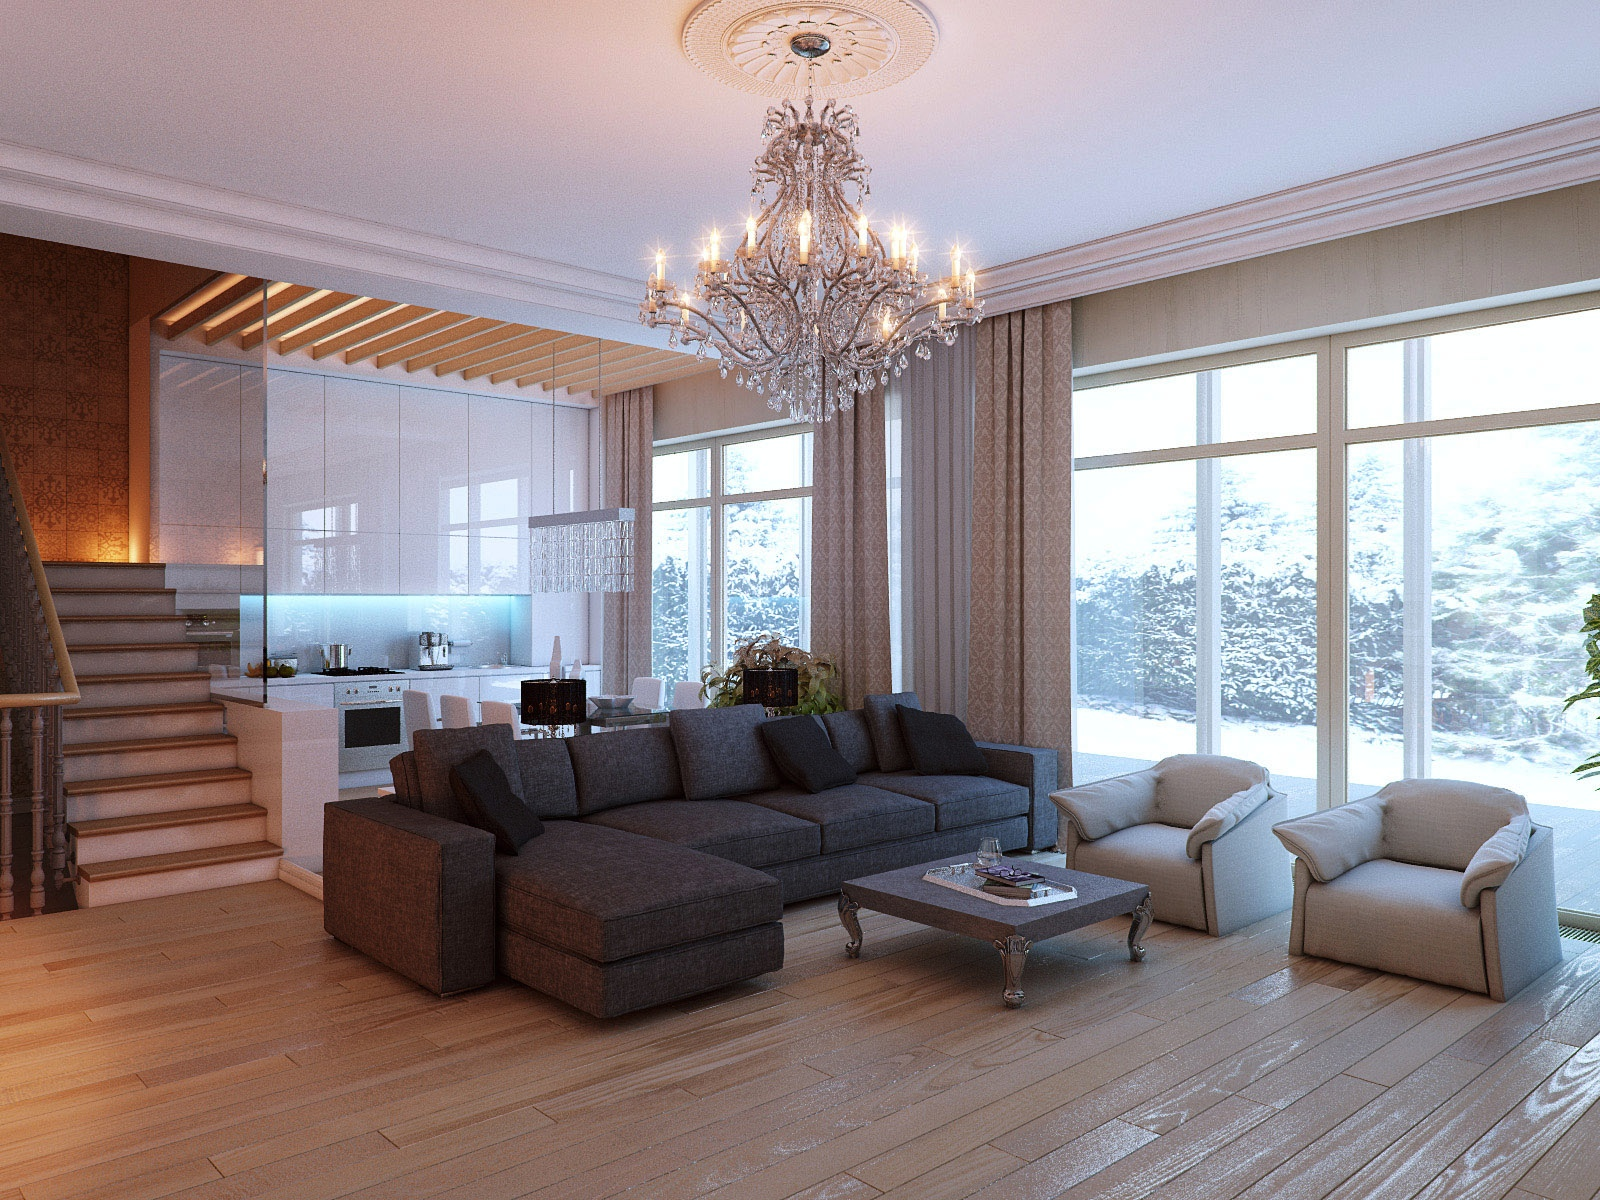 11-light-hardwood-floors